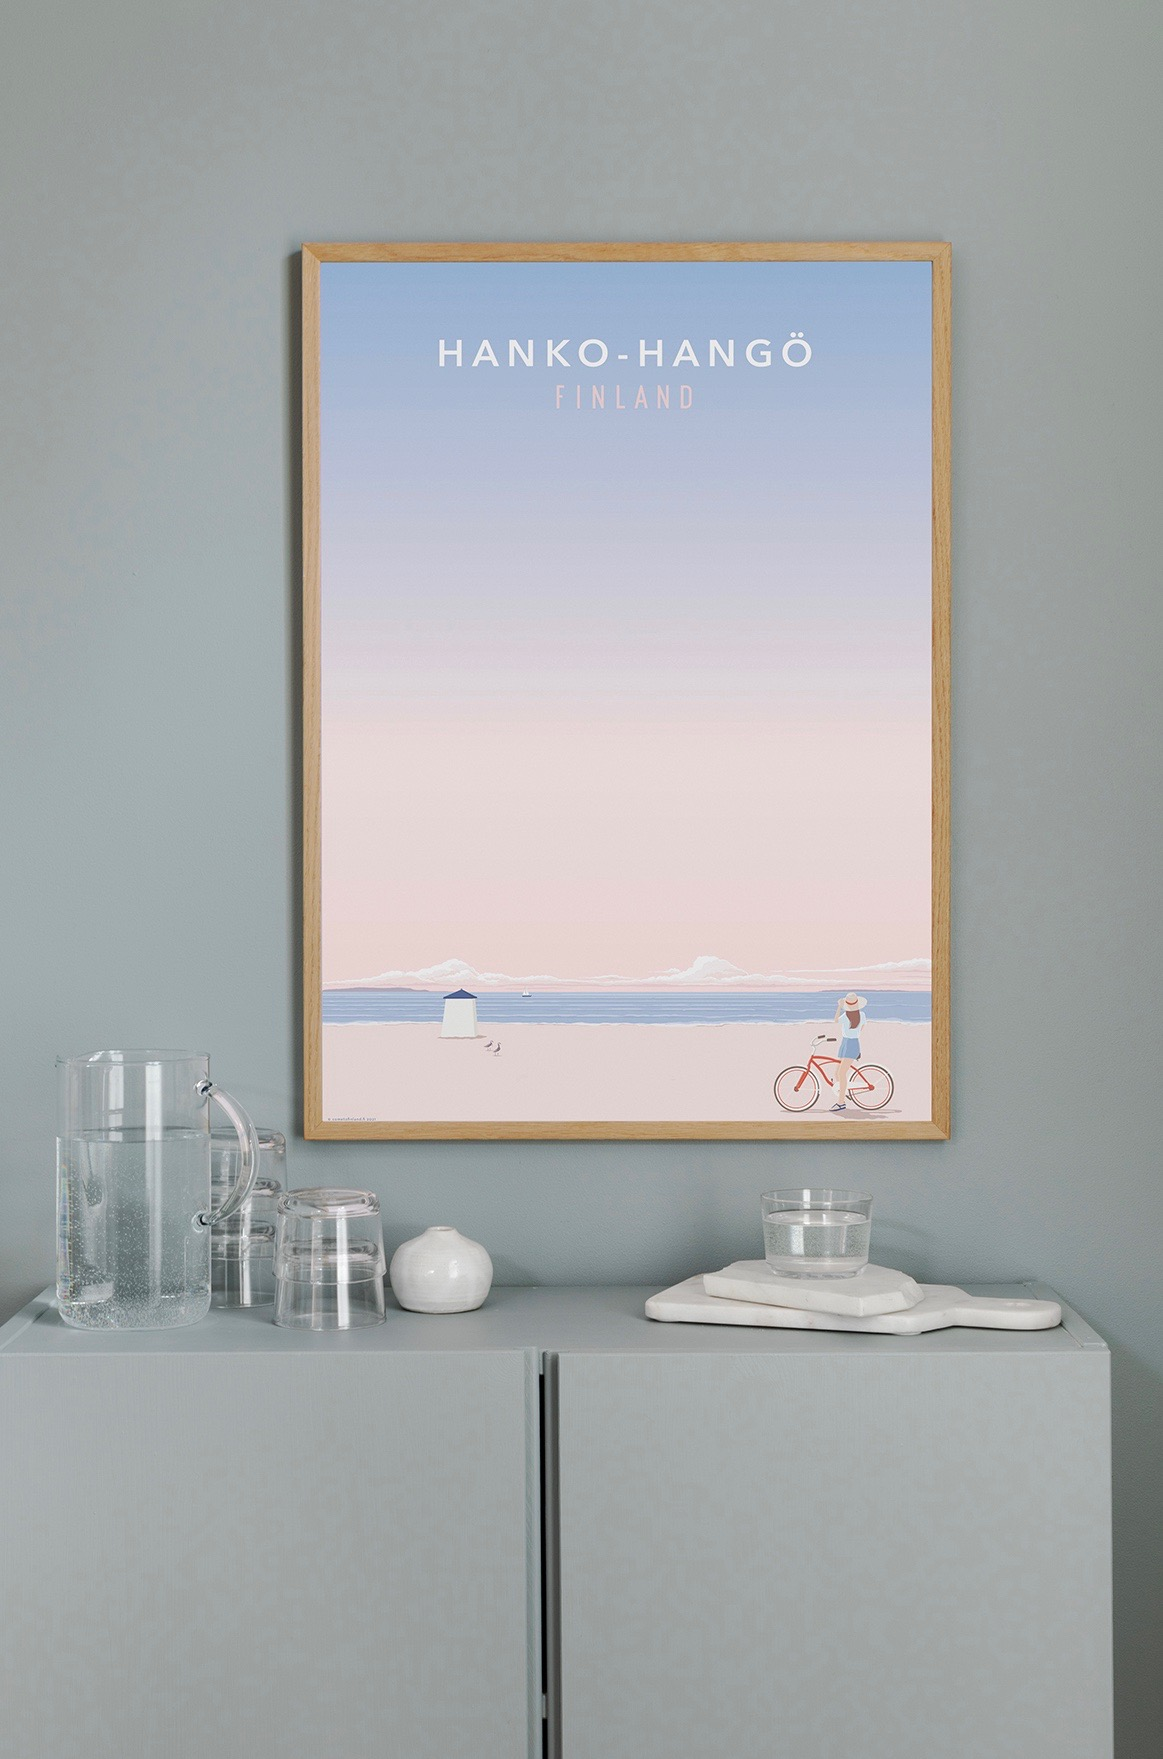 Poster of the beach in Hanko, woman on bicycle